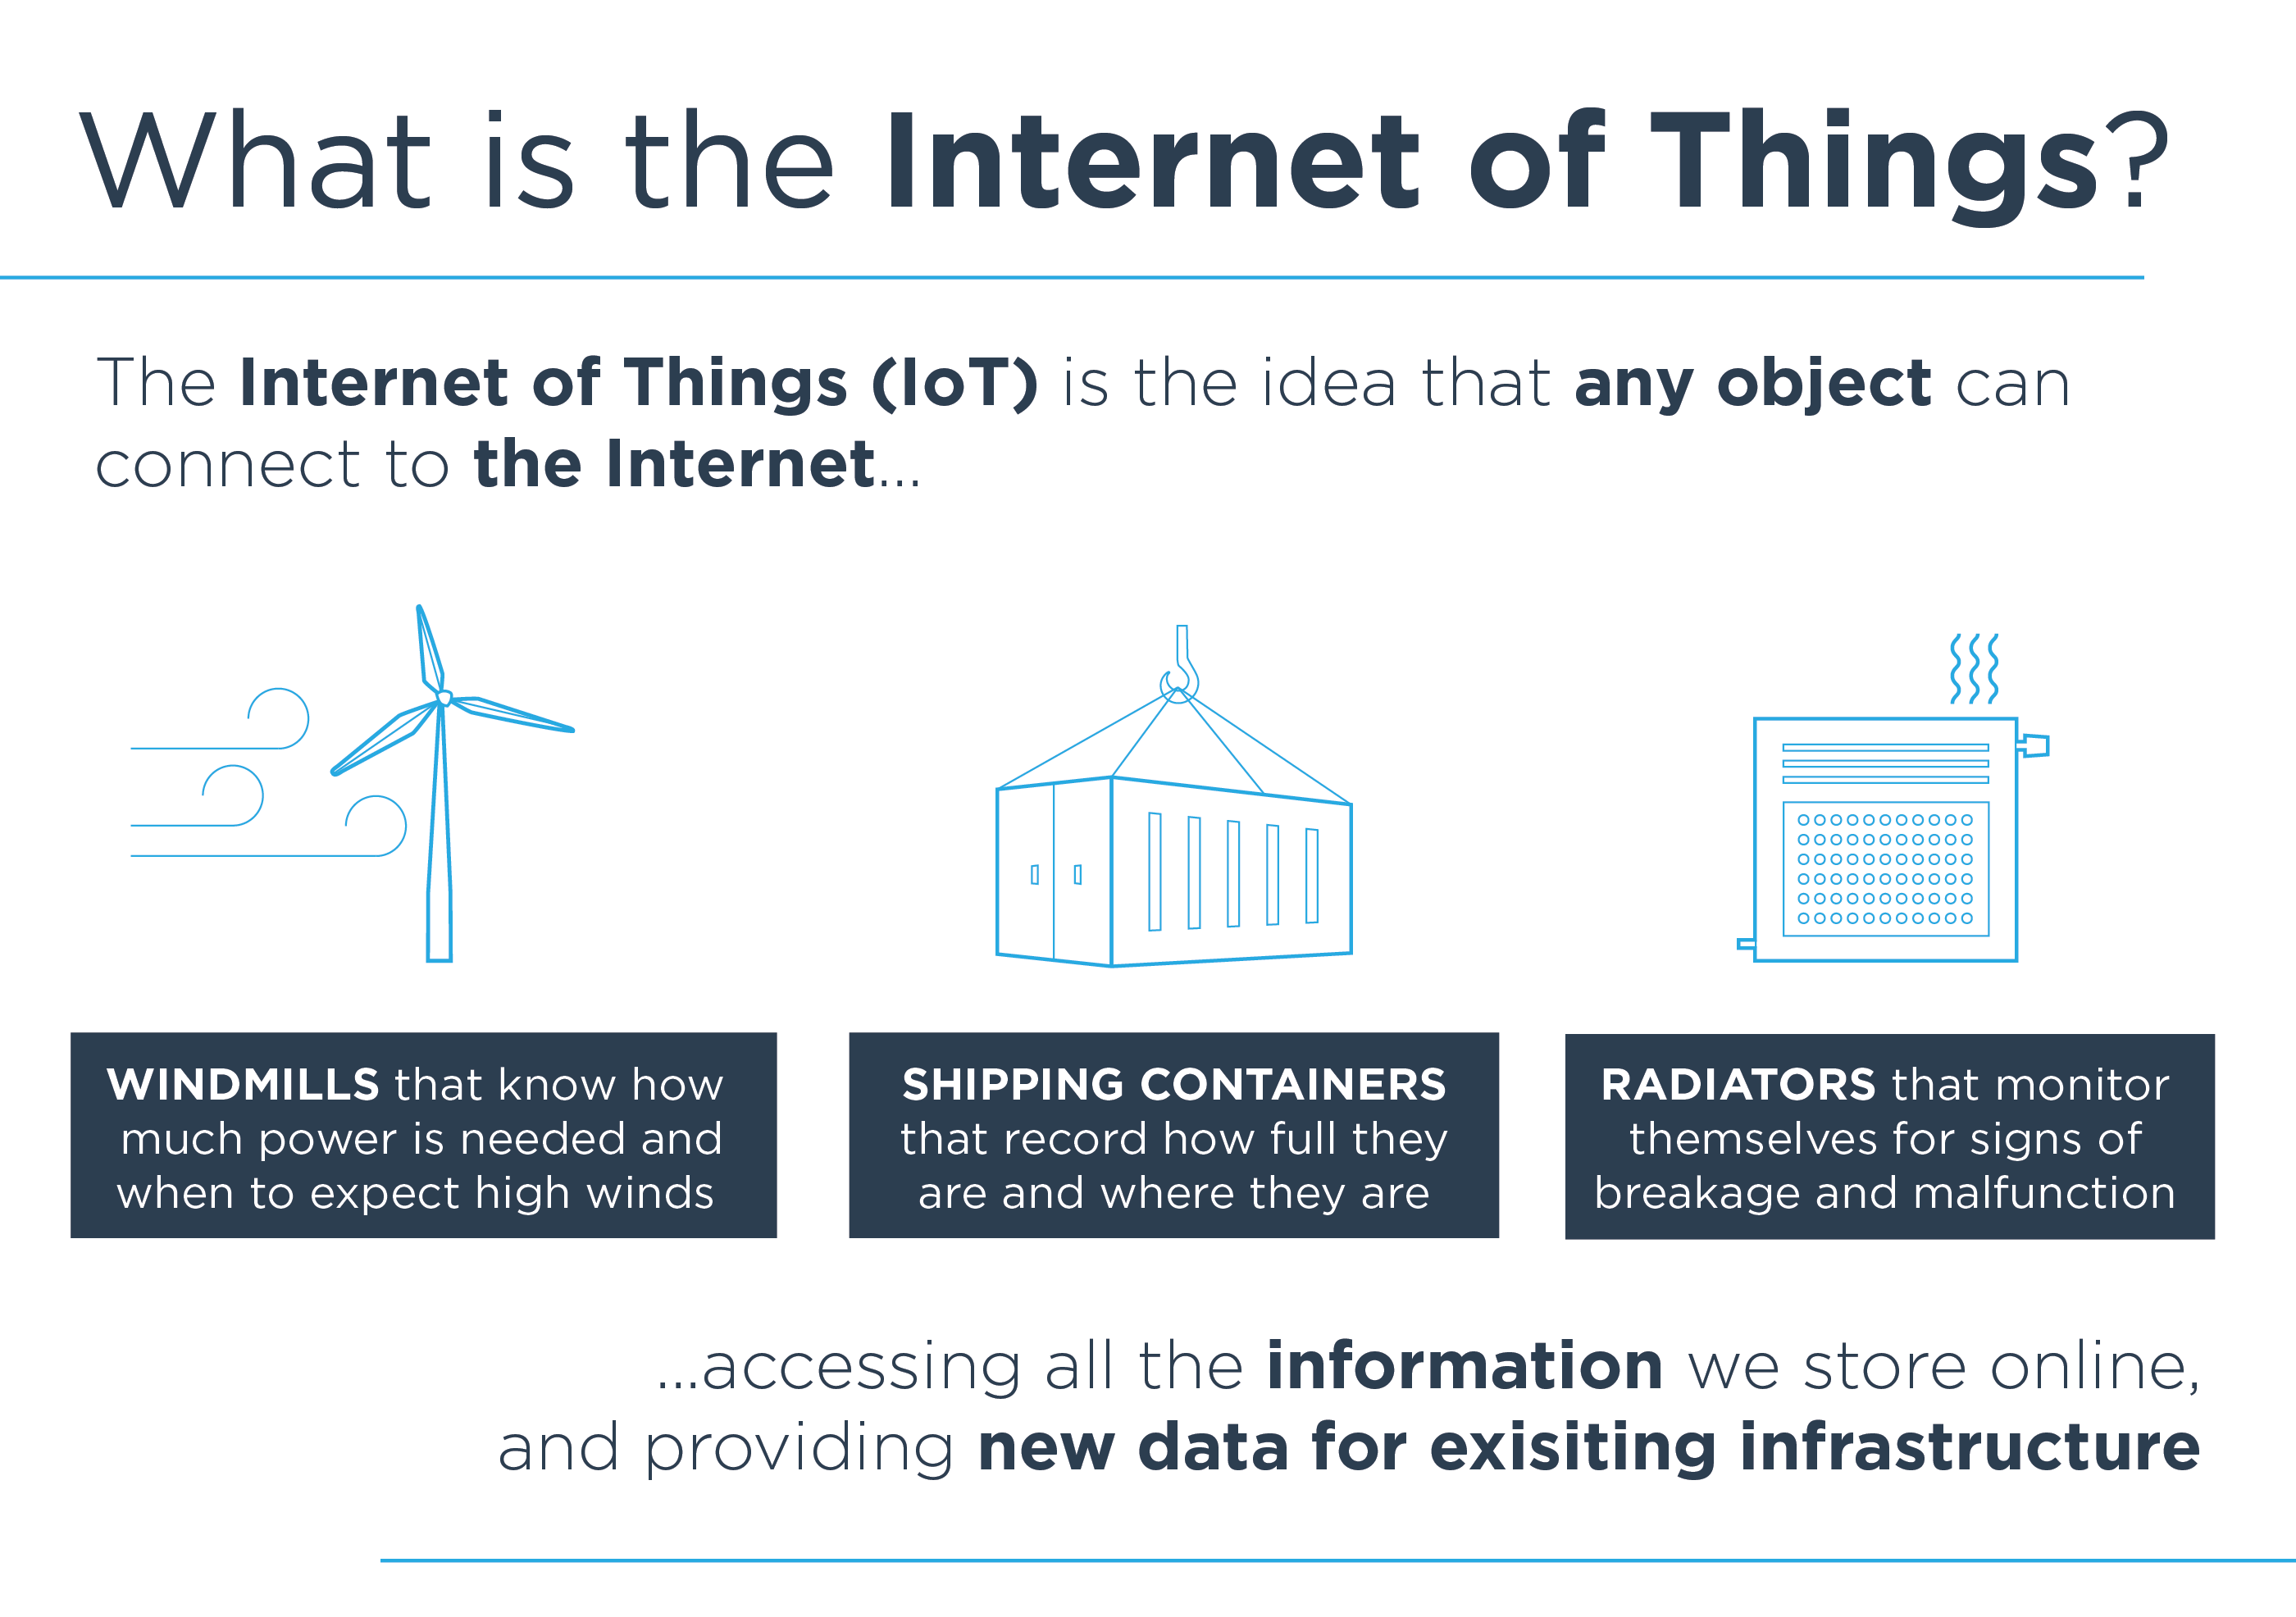 The Internet of Things (IoT) is the idea that any object can connect to the Internet, accessing all the information we store online, and providing new data for exisiting infrastructure